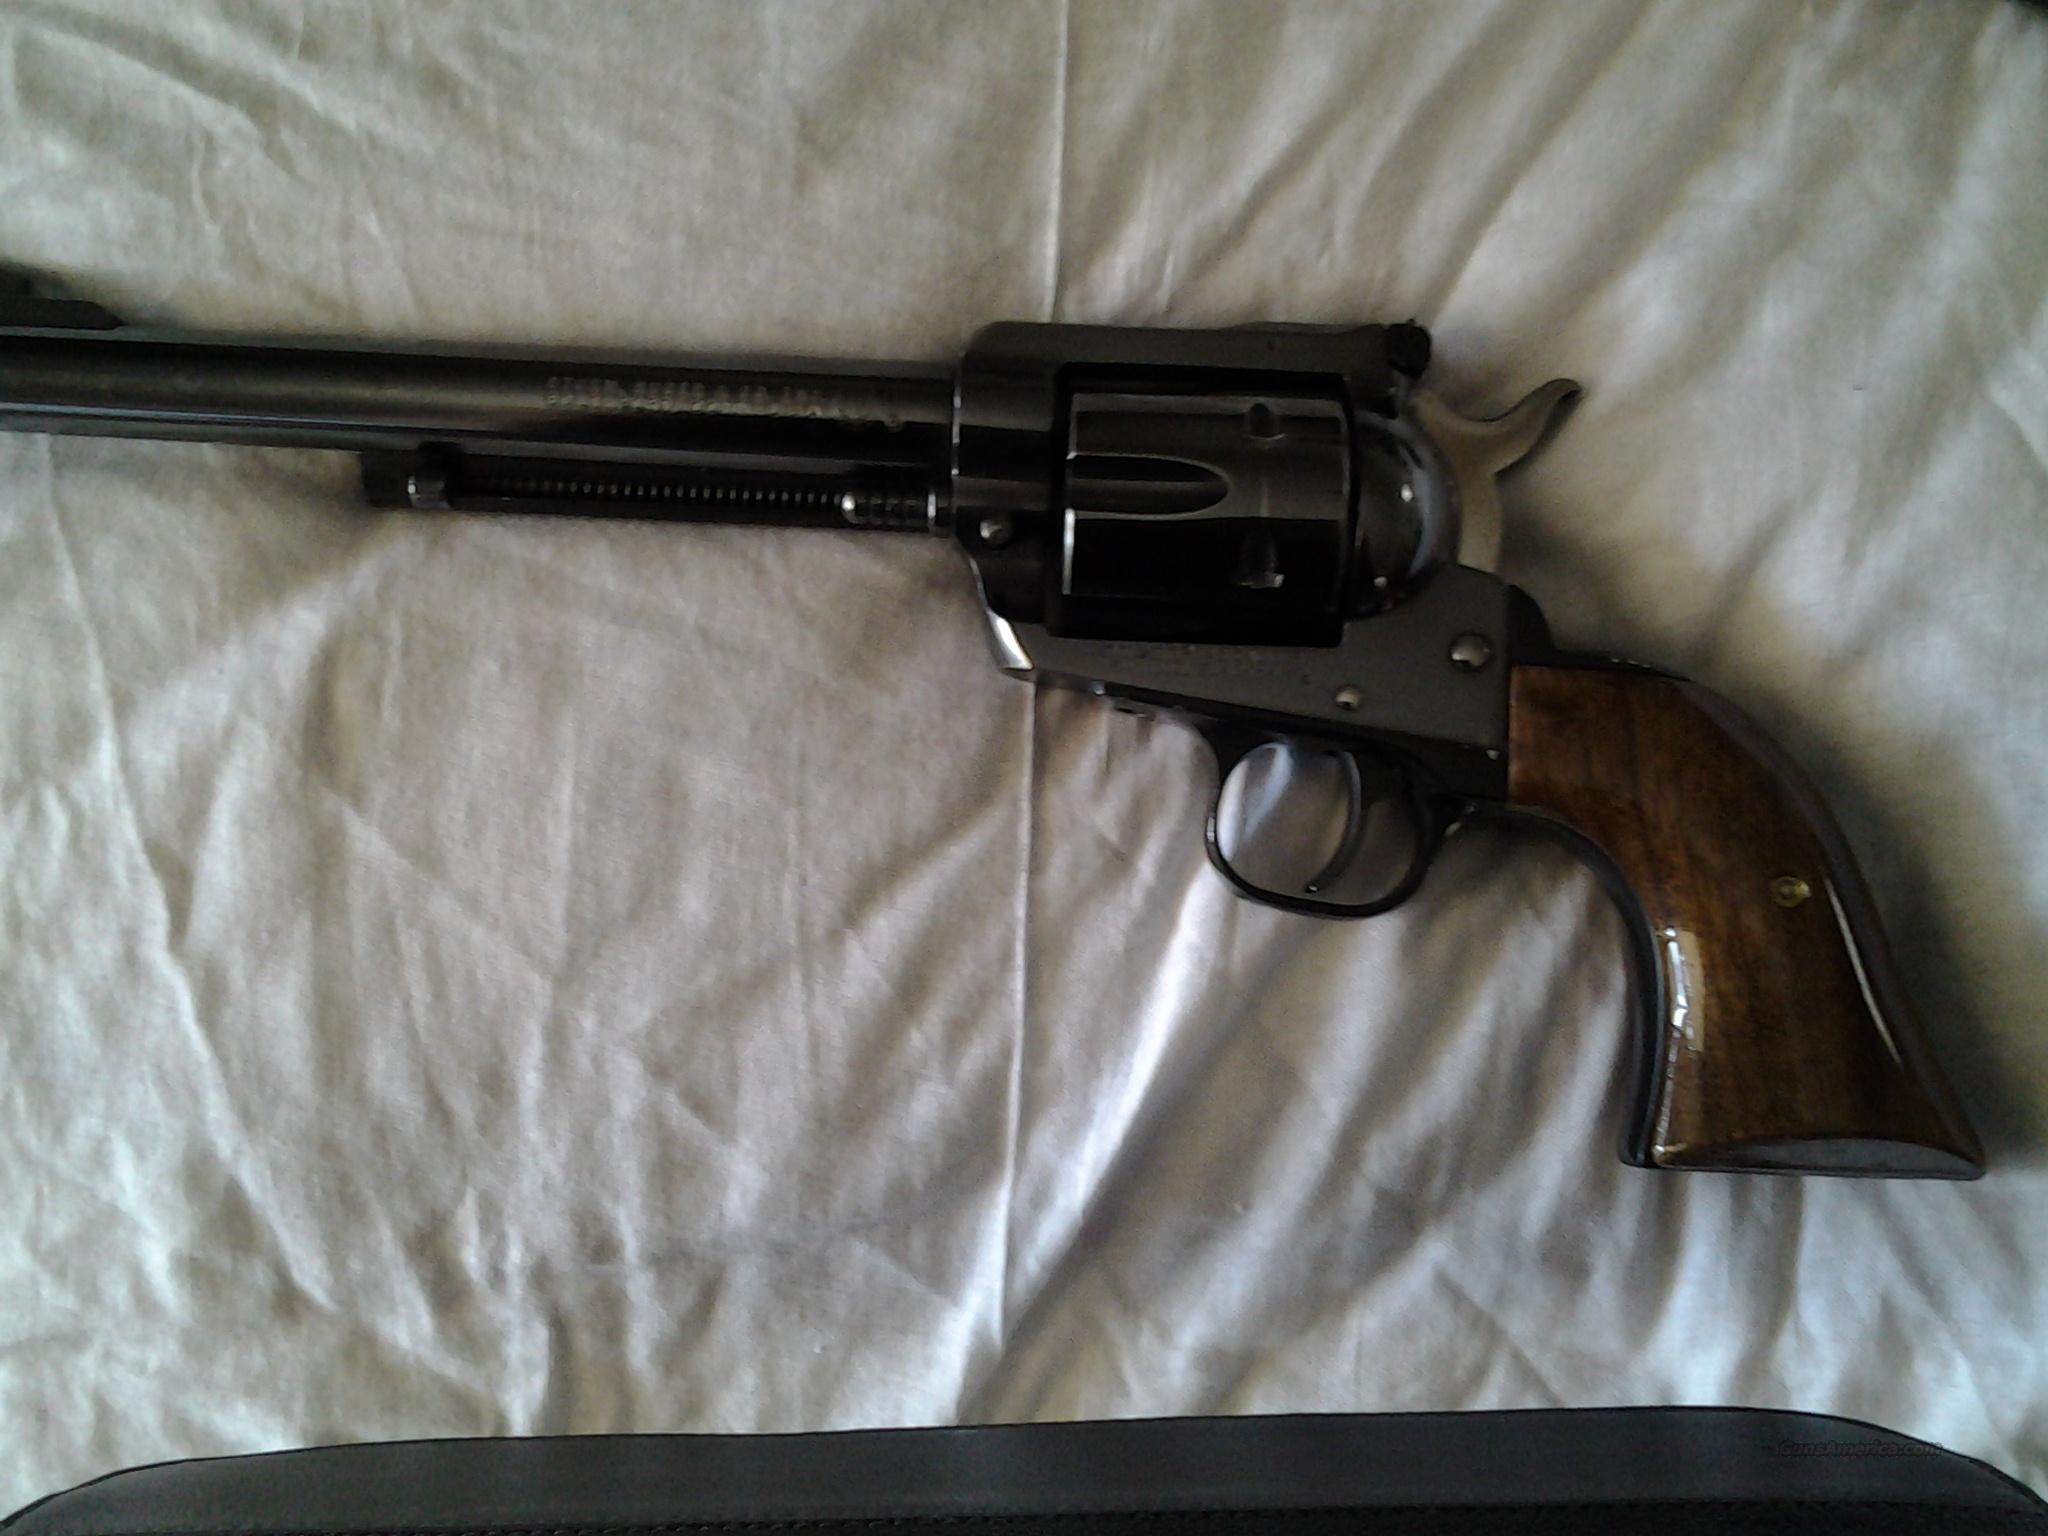 4 sale 45lc/45acp ruger 71/2in barrel blackhawk   Guns > Pistols > Ruger Single Action Revolvers > Blackhawk Type